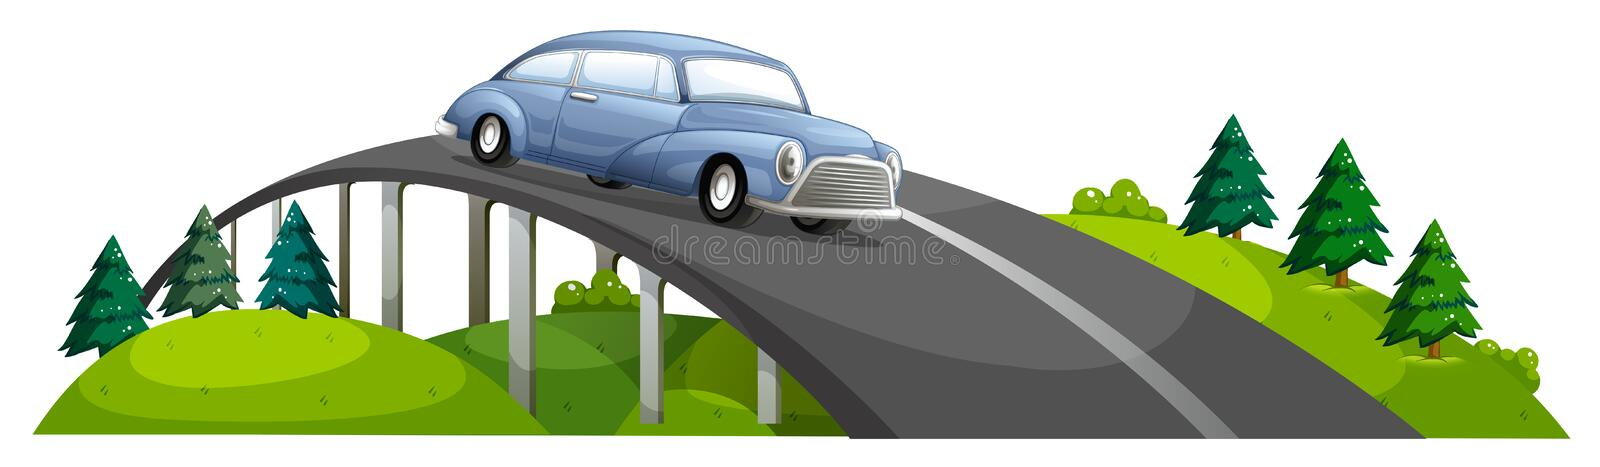 A car passing over the bridge royalty free illustration